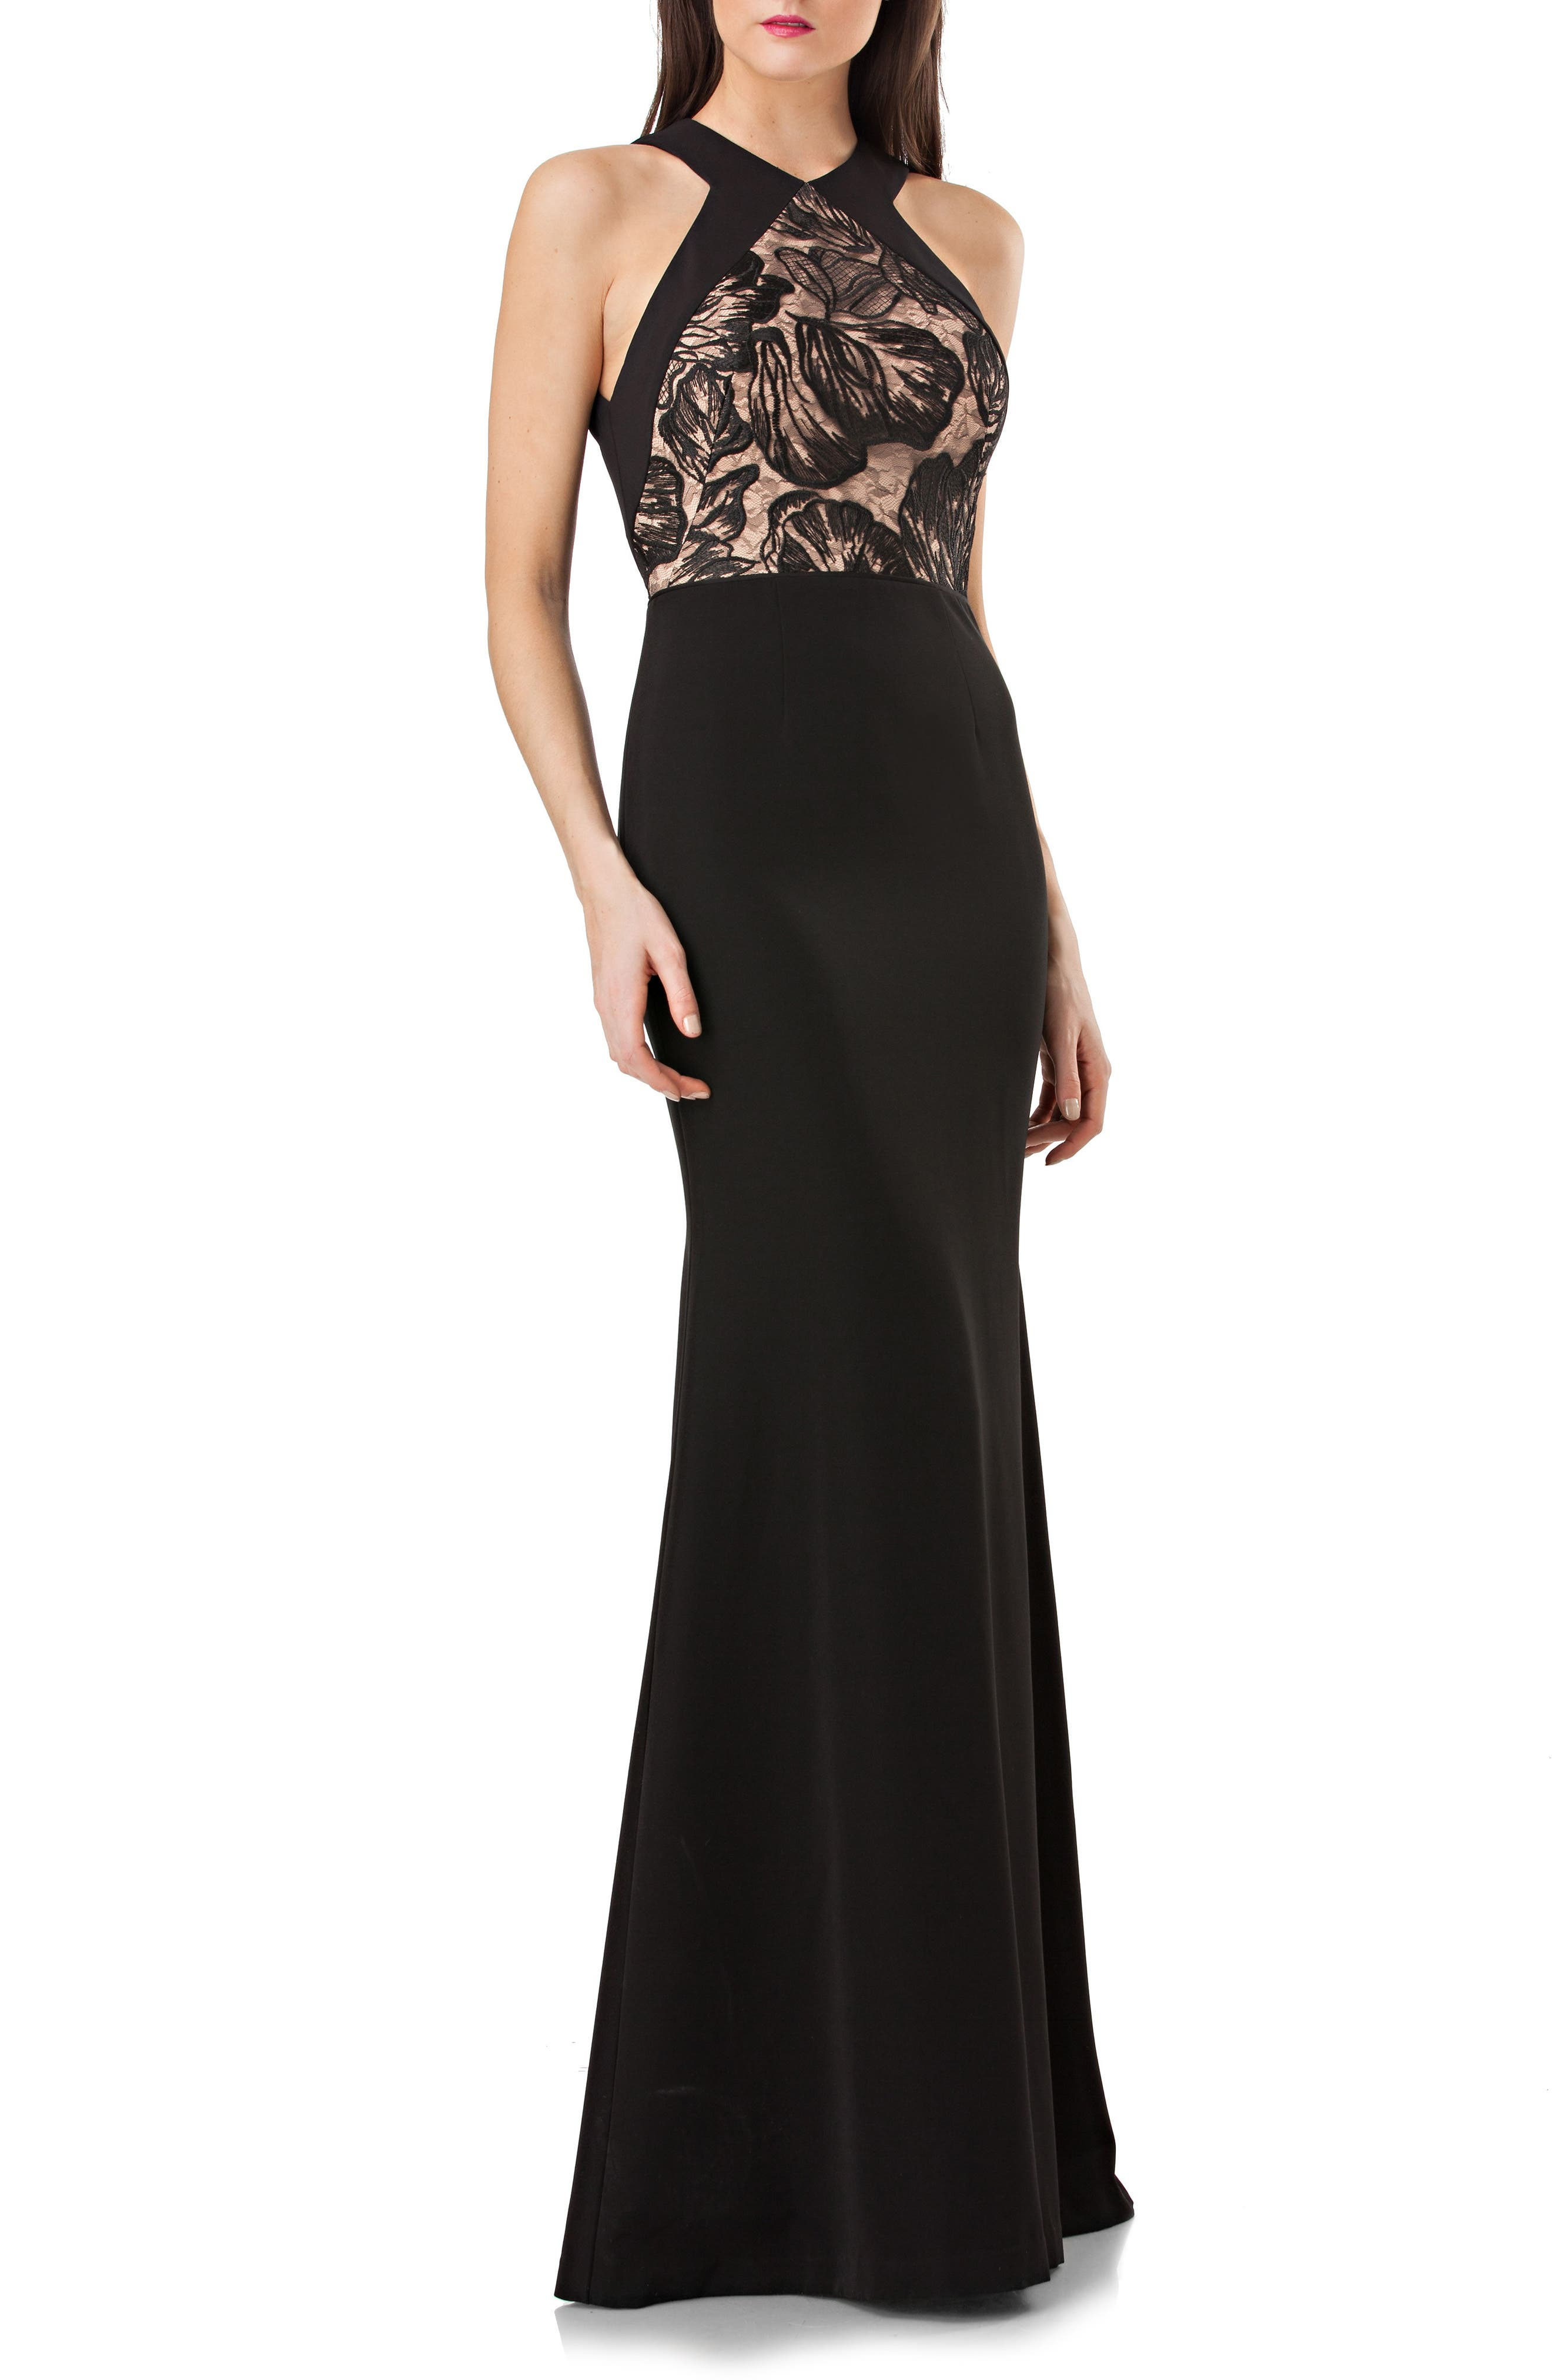 JS Collection Lace Front Halter Mermaid Gown,                         Main,                         color, 011